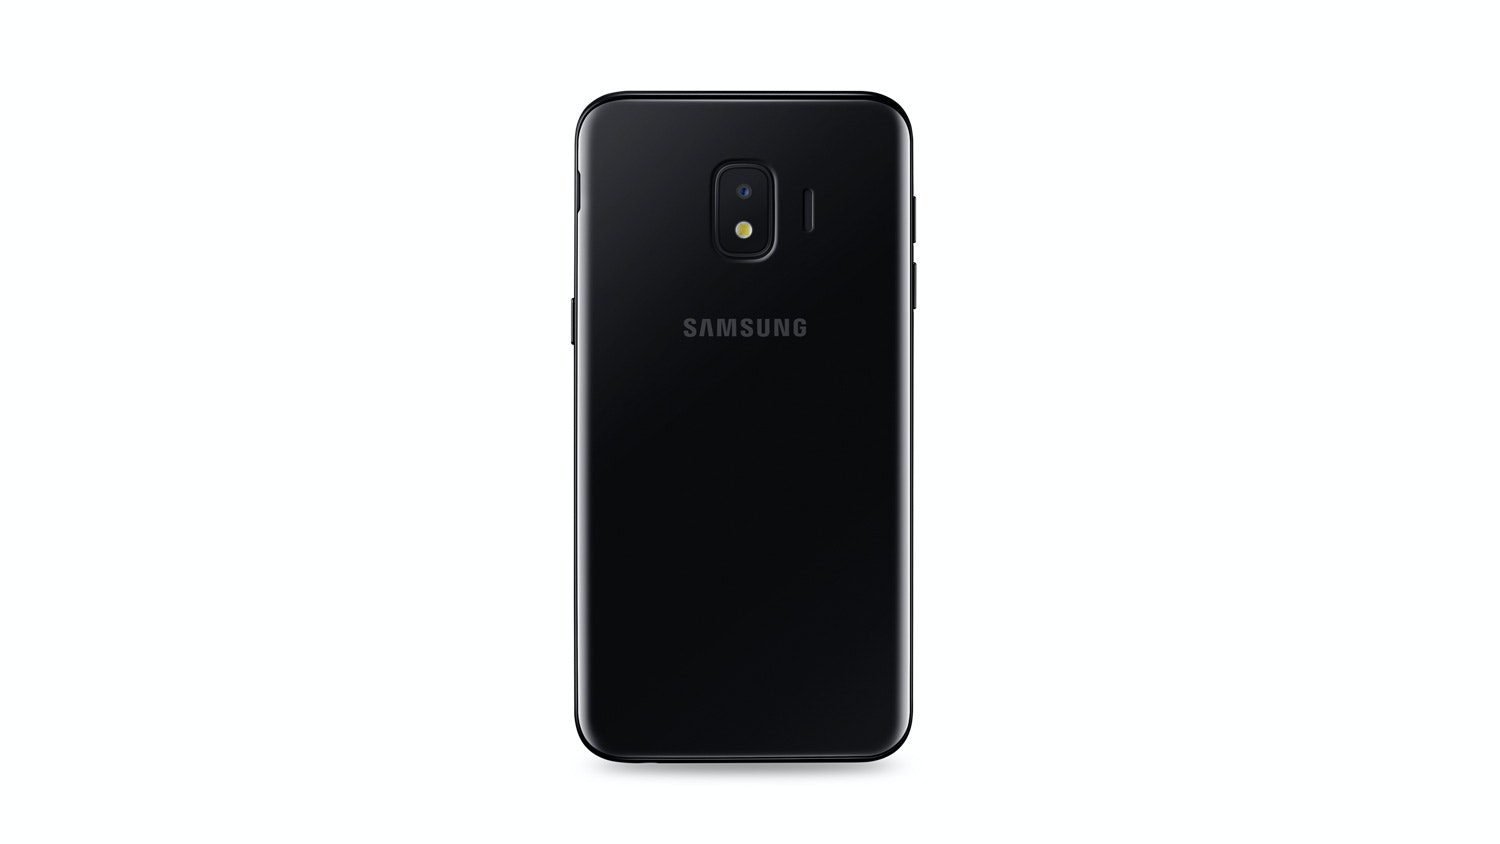 2degree Samsung Galaxy J2 Core Black Smartphone - Back